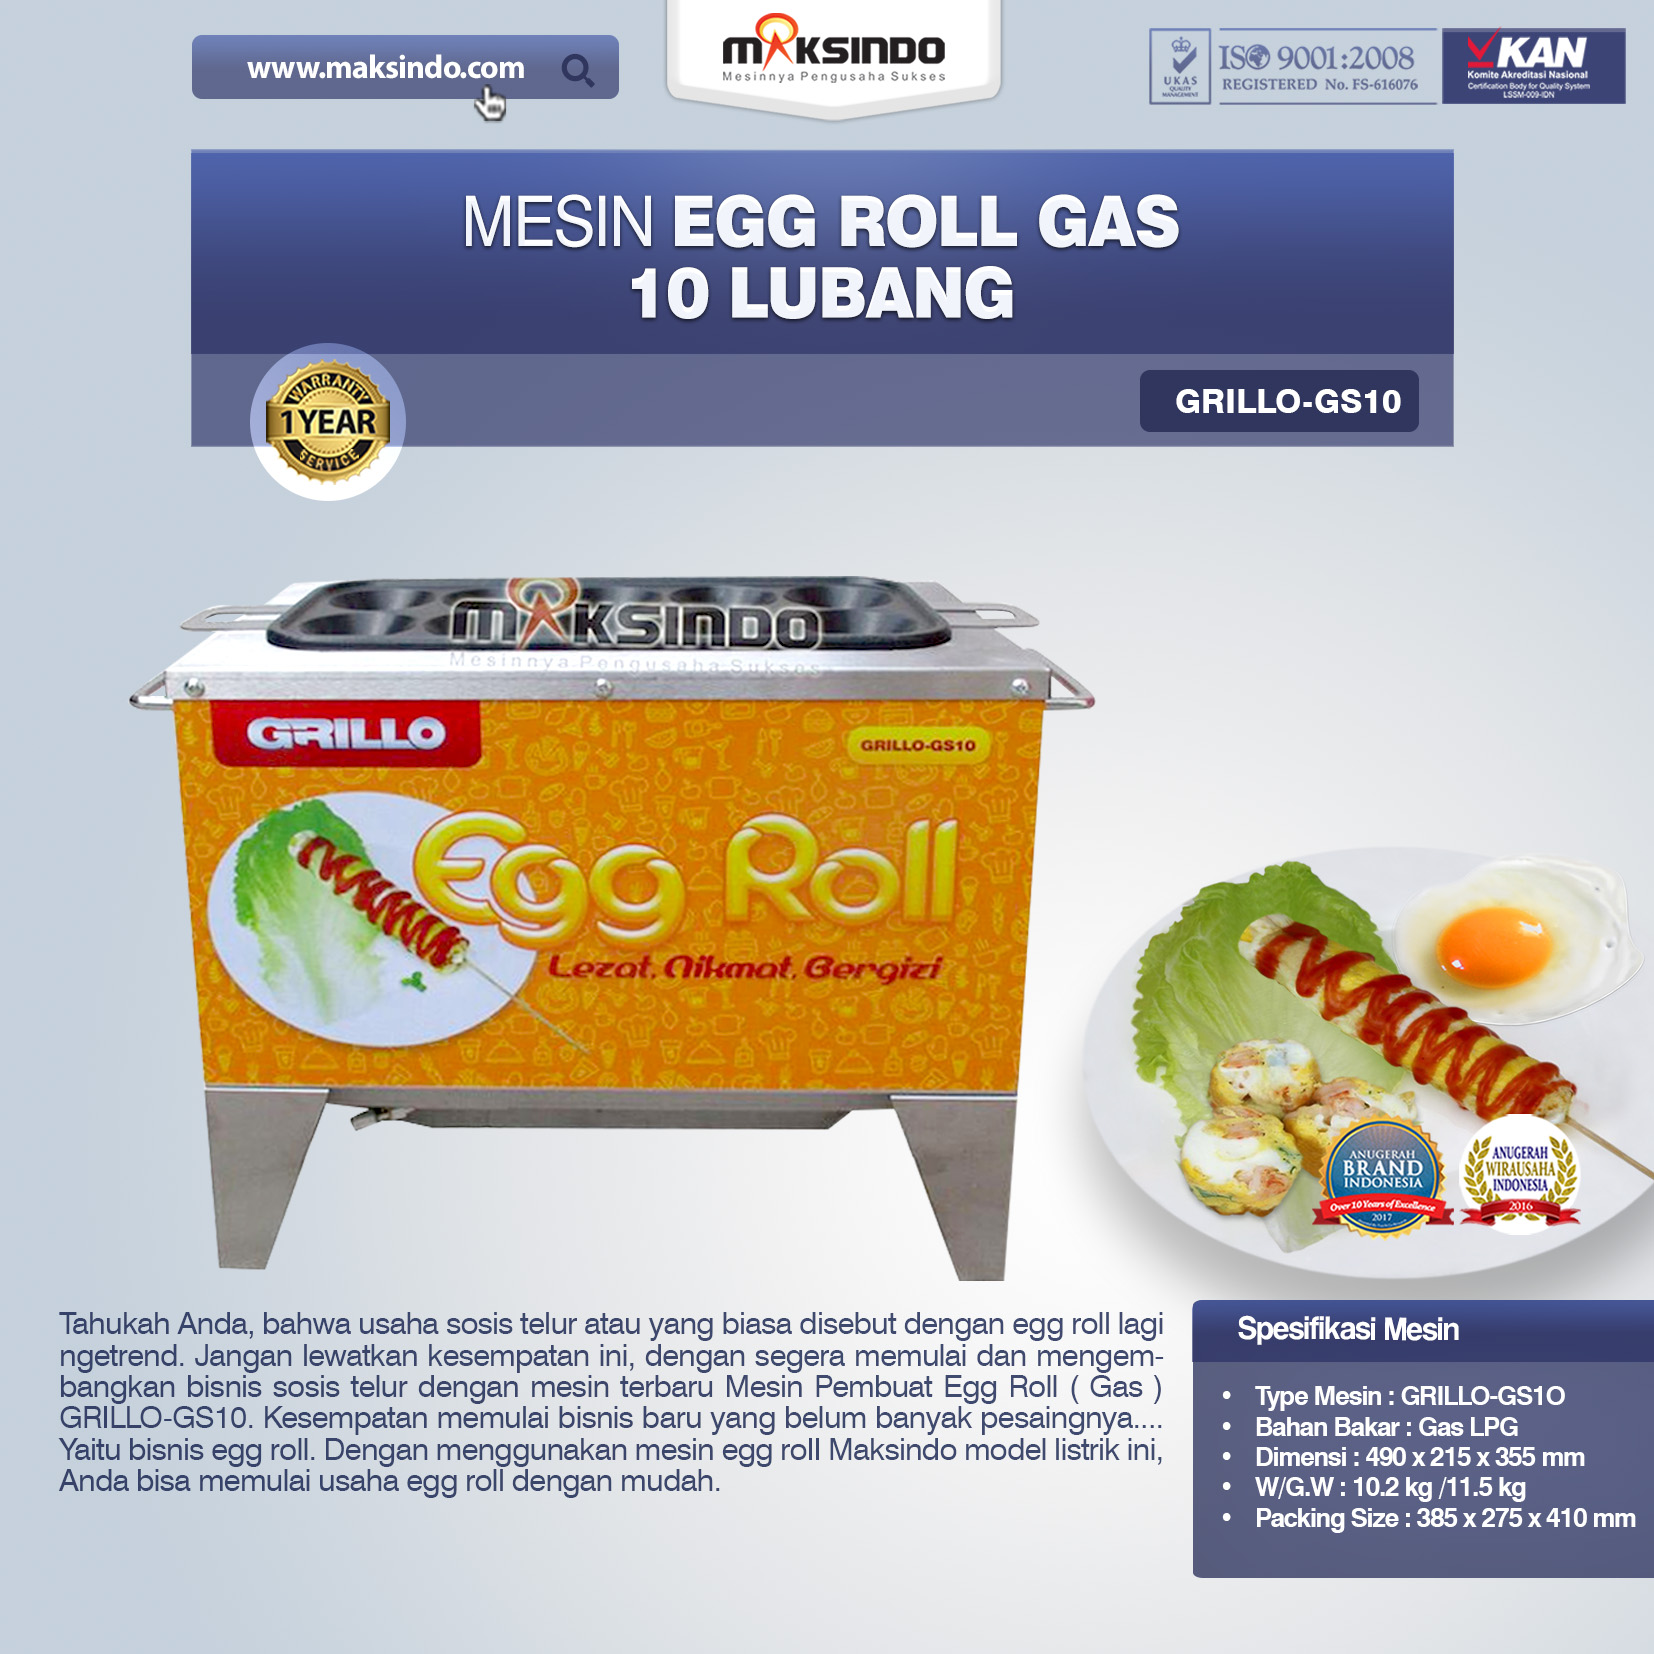 Egg Roll Gas 10 Lubang GRILLO-GS10